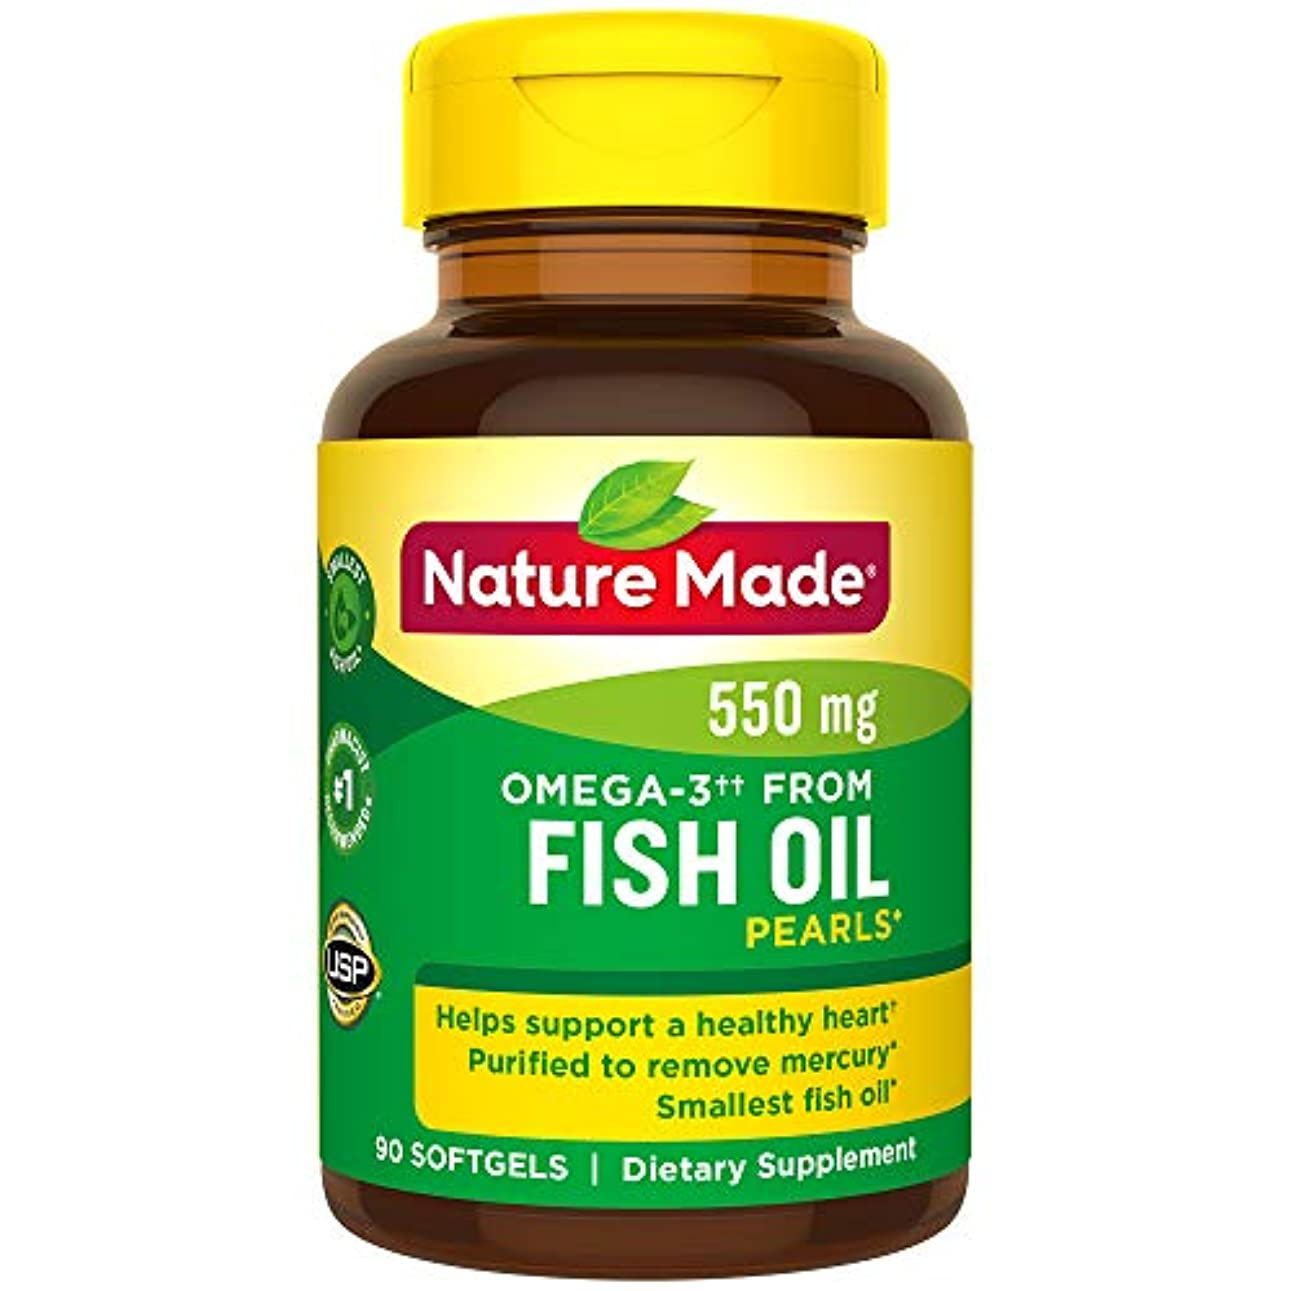 Nature Made Fish Oil Pearls 500 Mg Softgel, 90 Count 海外直送品